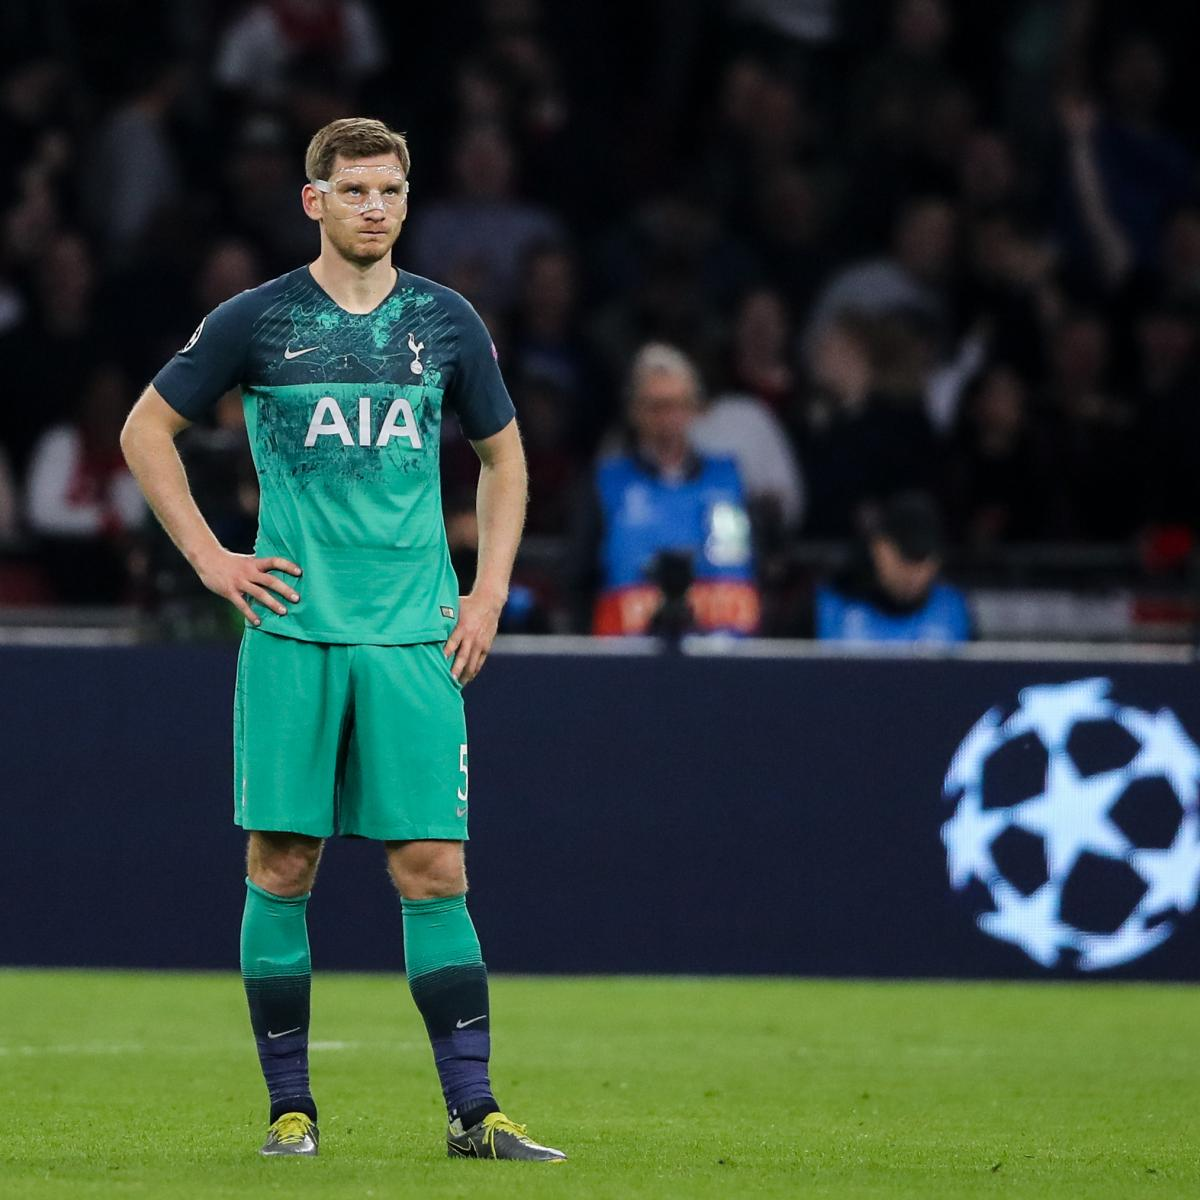 Tottenham's Jan Vertonghen Pictured On Crutches After Ajax